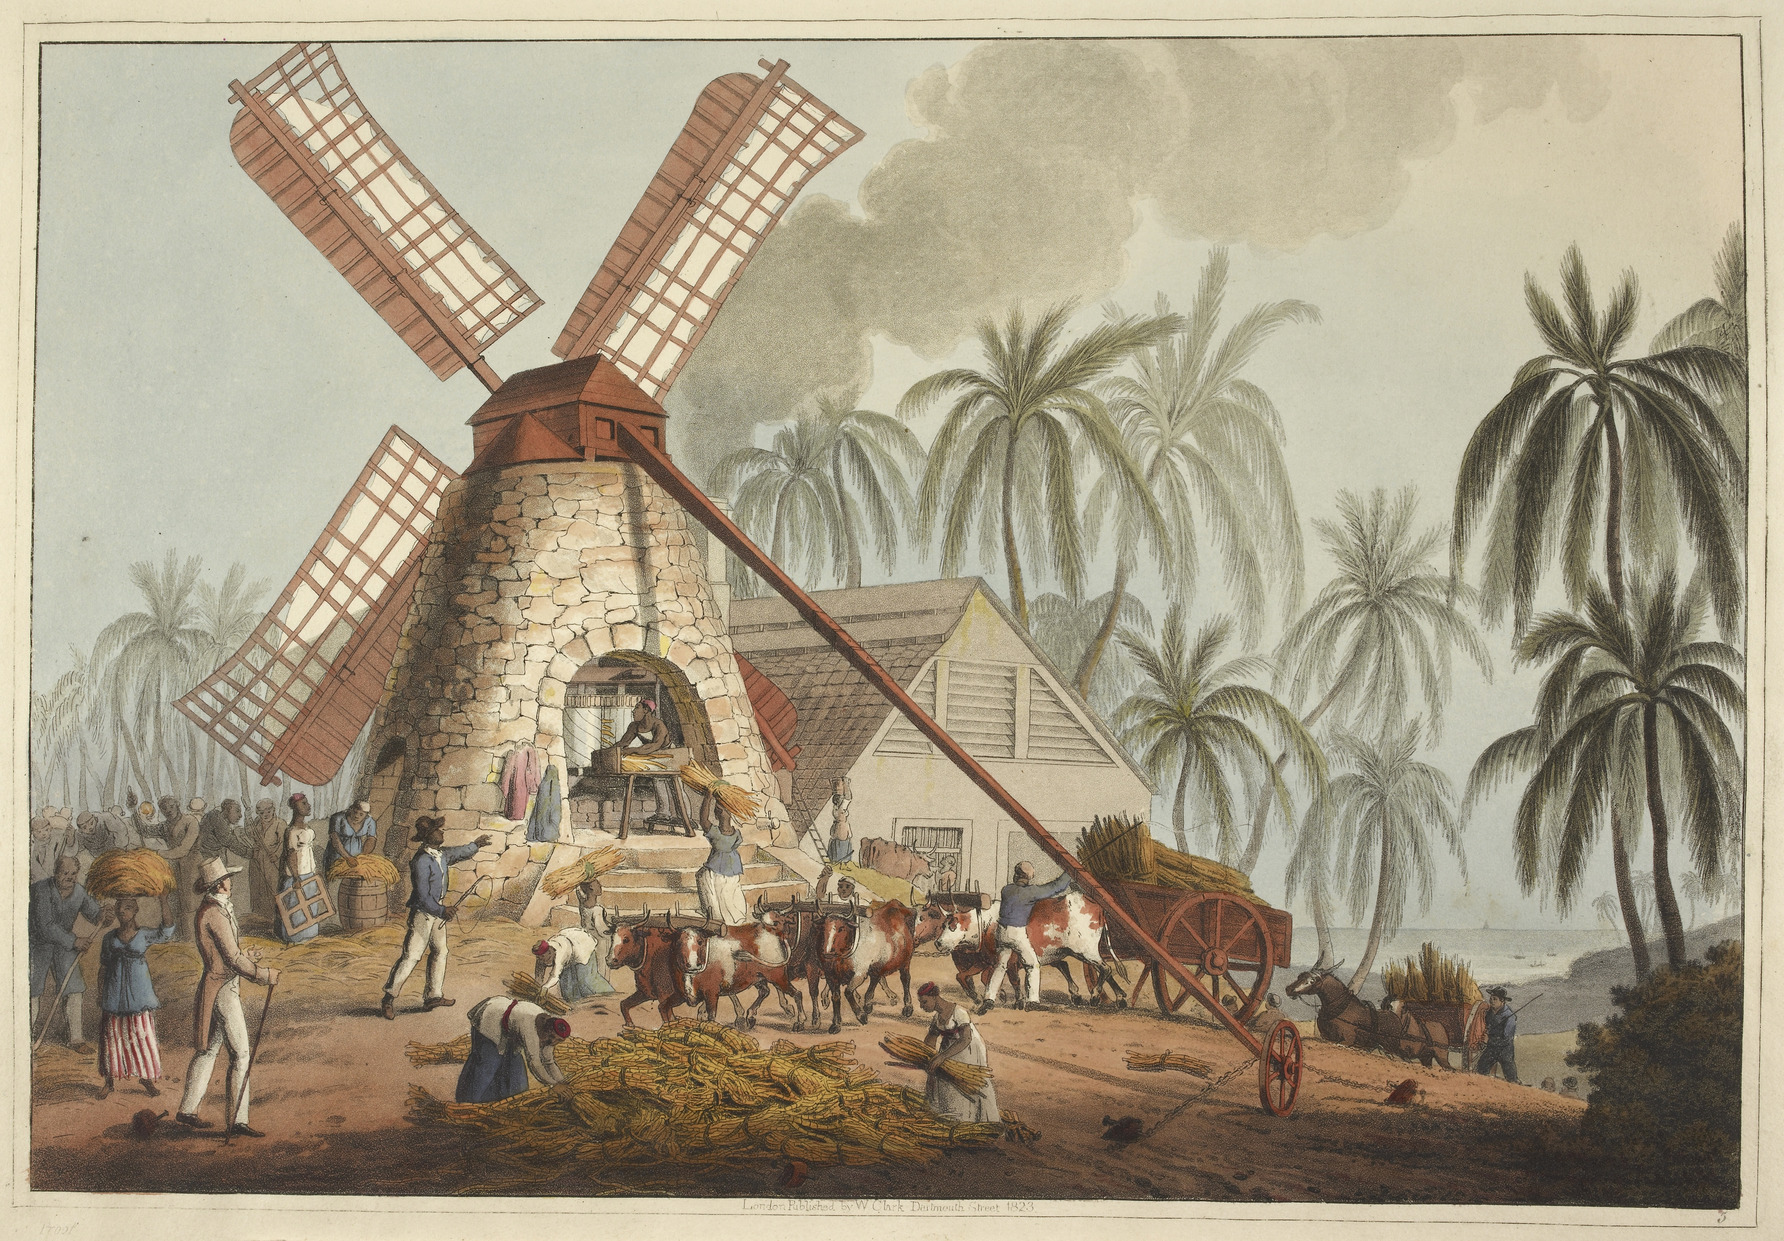 Grinding sugar cane in a windmill on a sugar plantation in the British colony of Antigua. Originally published/produced in London by Thomas Clay, 1823.